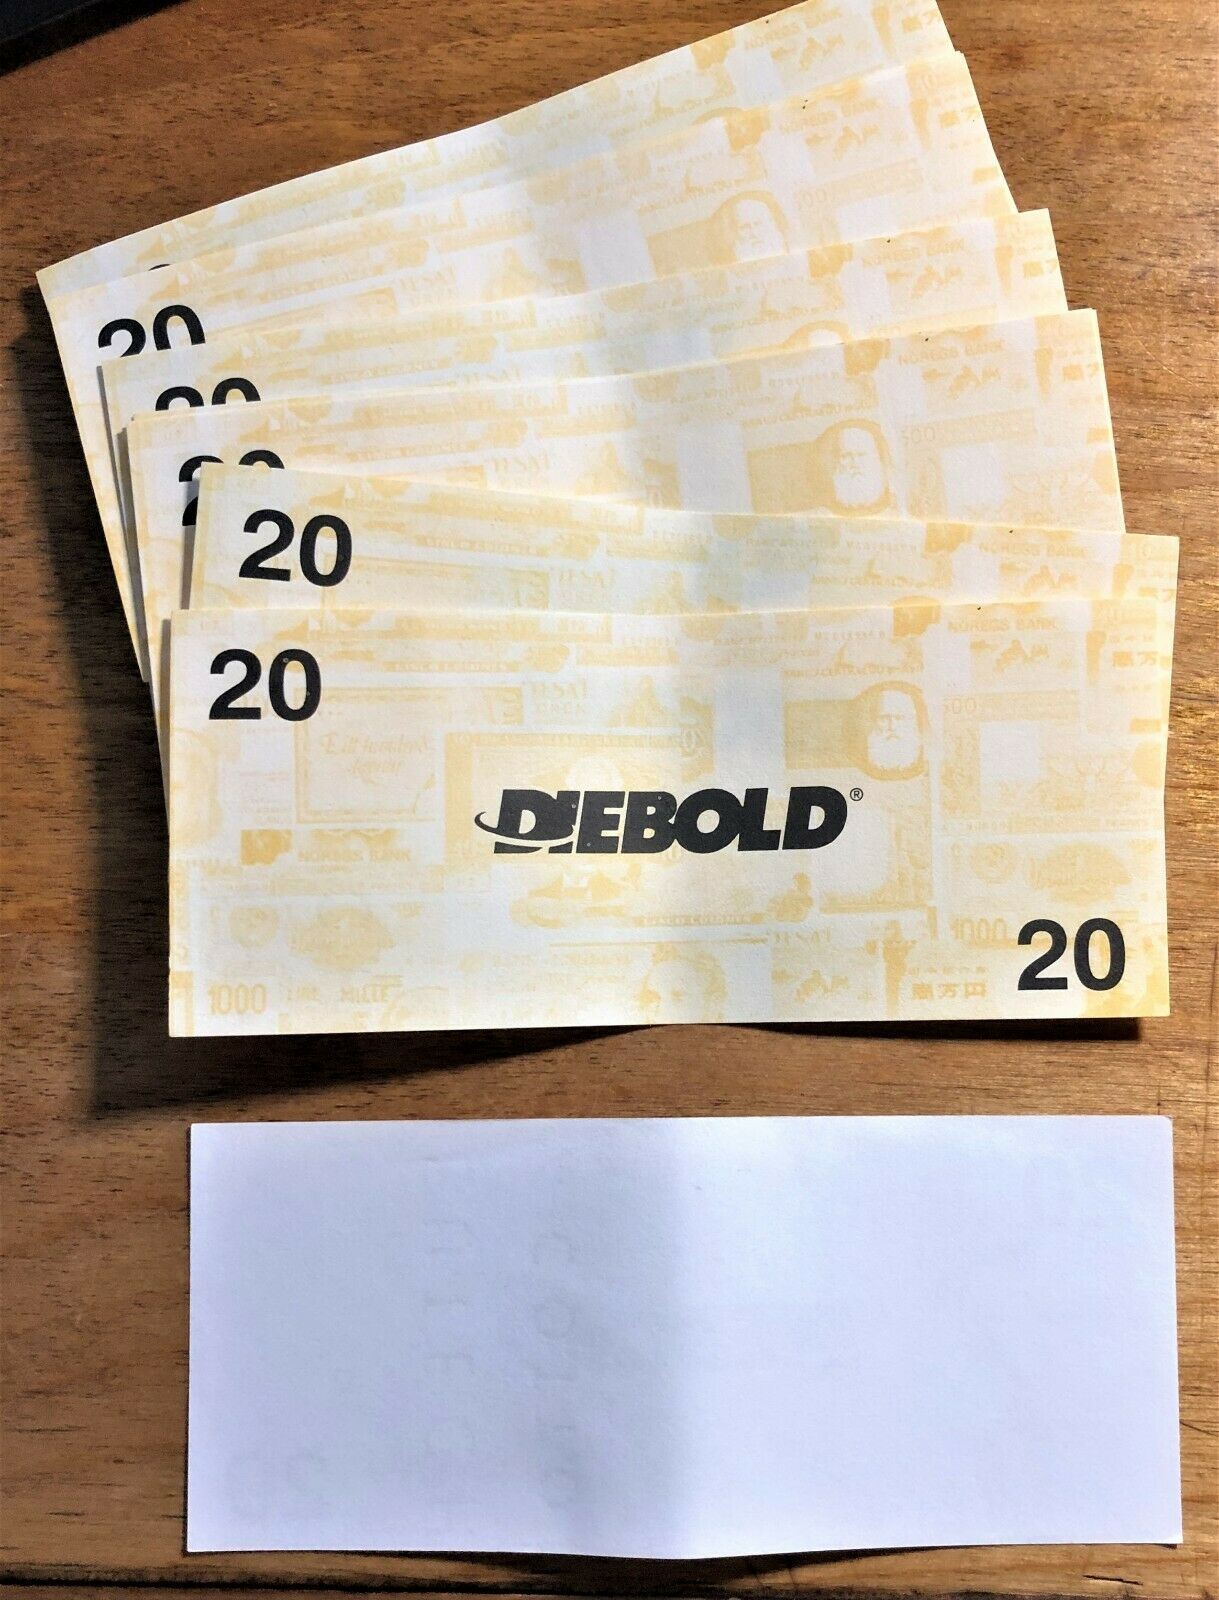 WHOLESALE 10 DIEBOLD ATM TRAINERS PICTURING PRE-EURO WORLD NOTES DENOMINATED 20